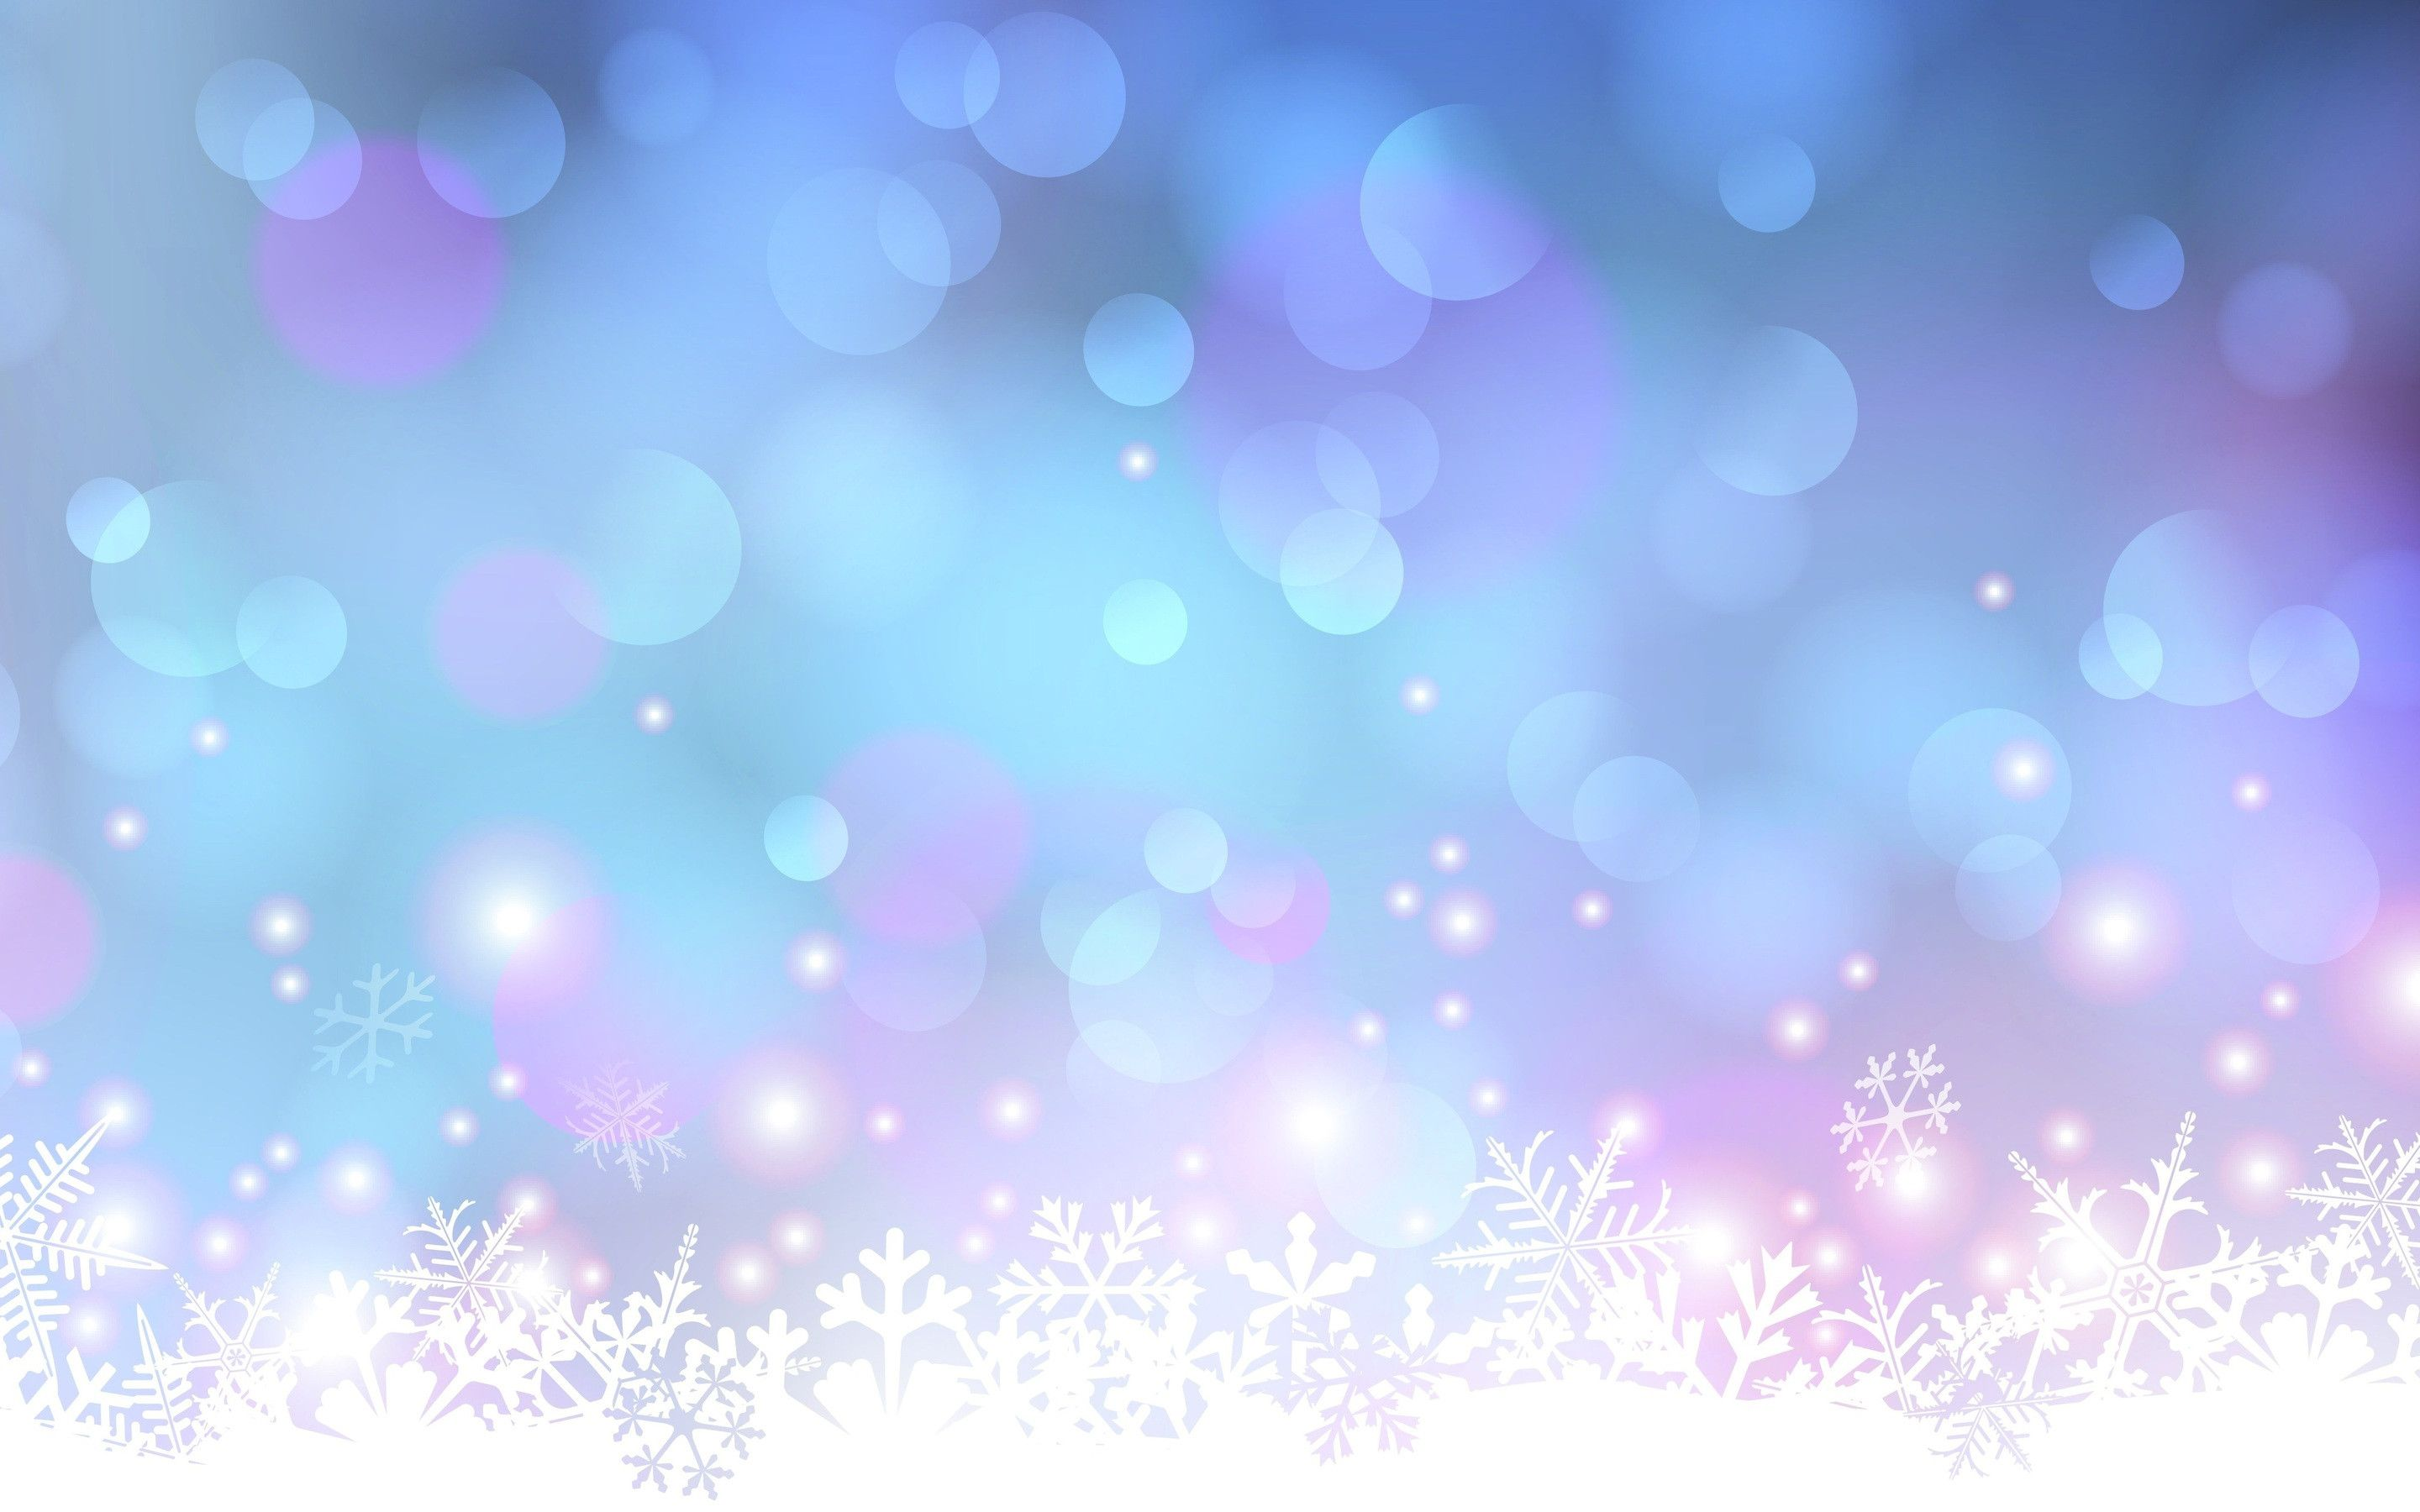 Holiday HD Wallpaper Holiday Backgrounds Cool Wallpapers 2880x1800